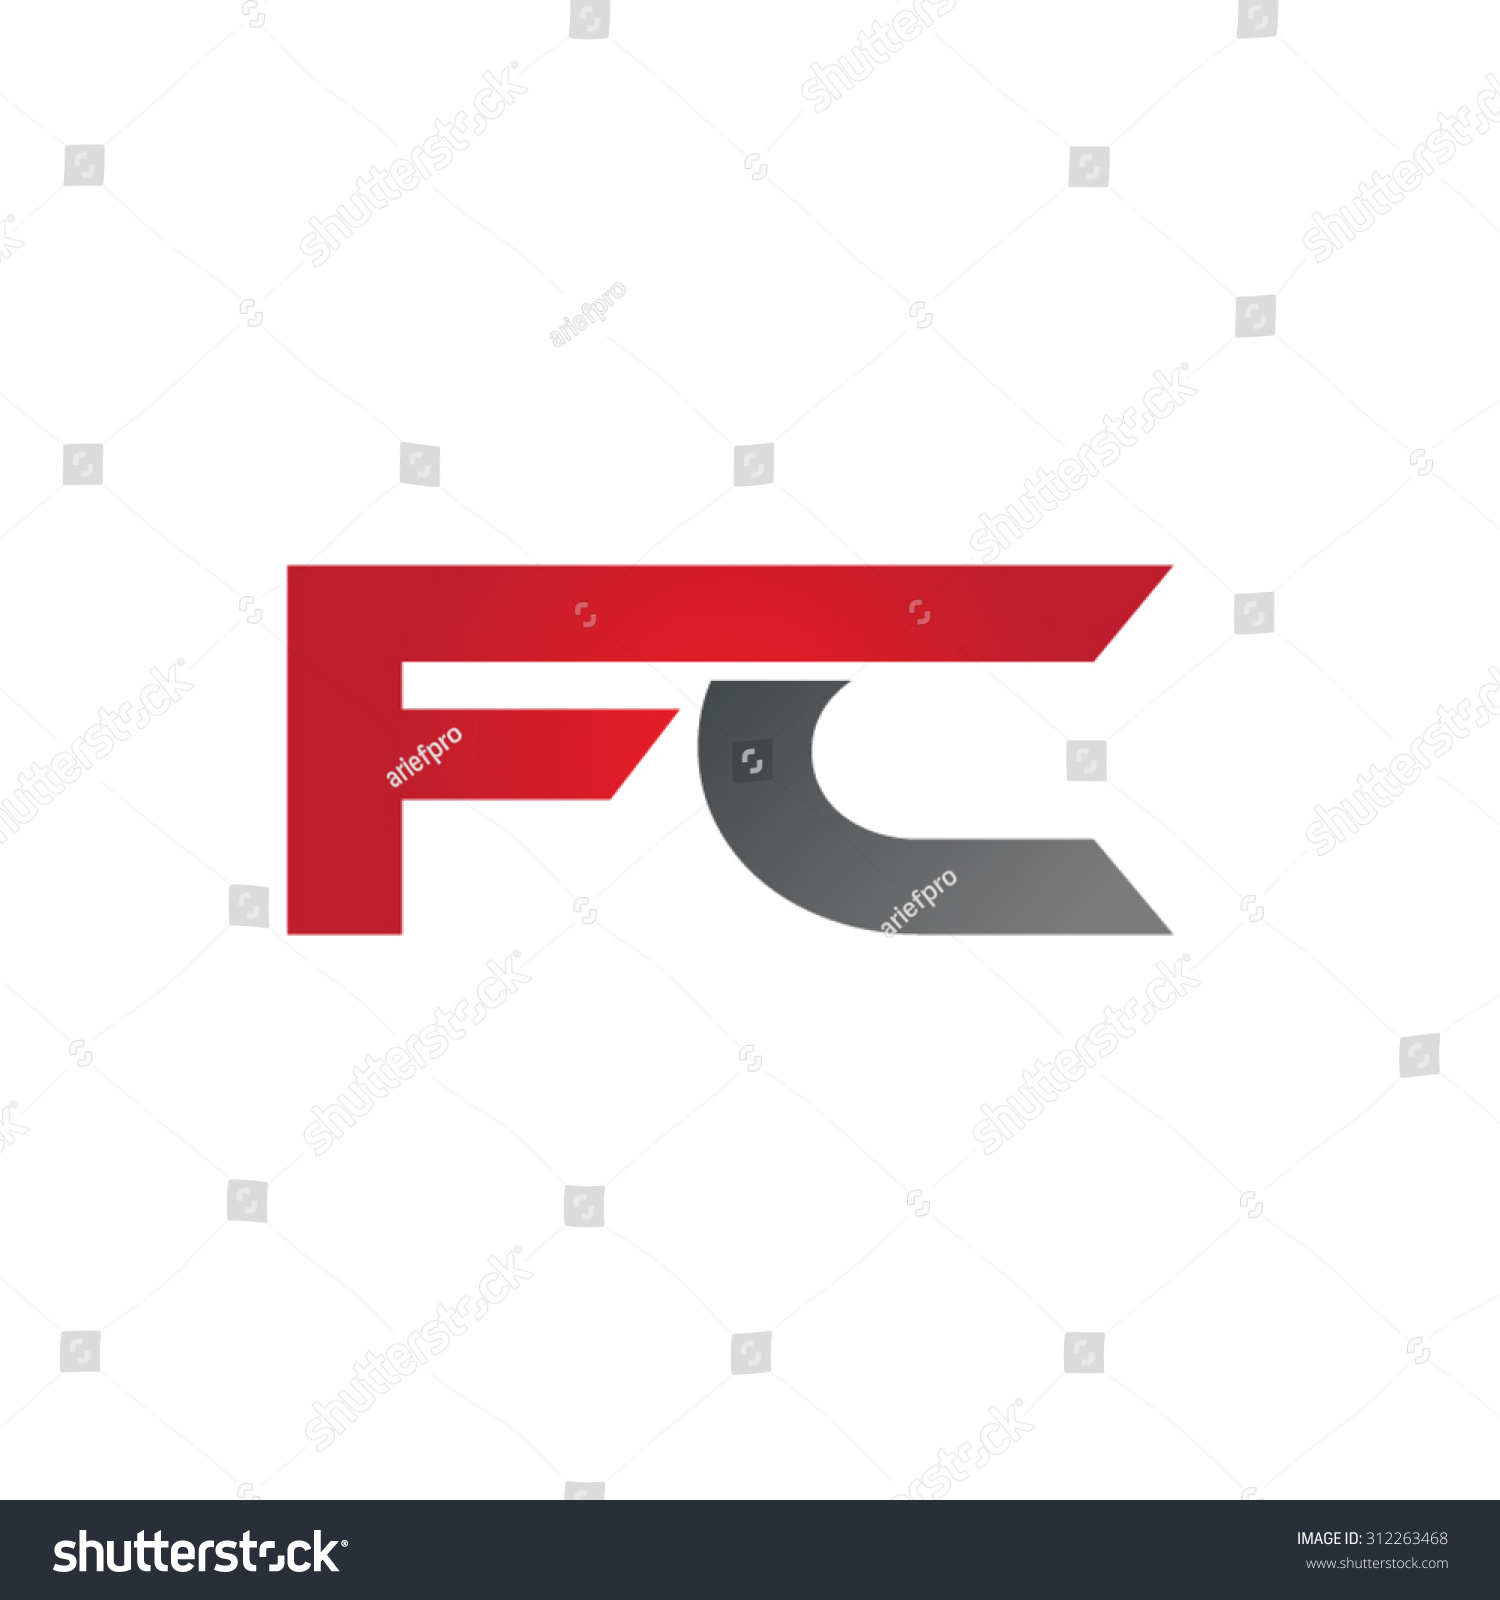 What is a family conglomerate fc